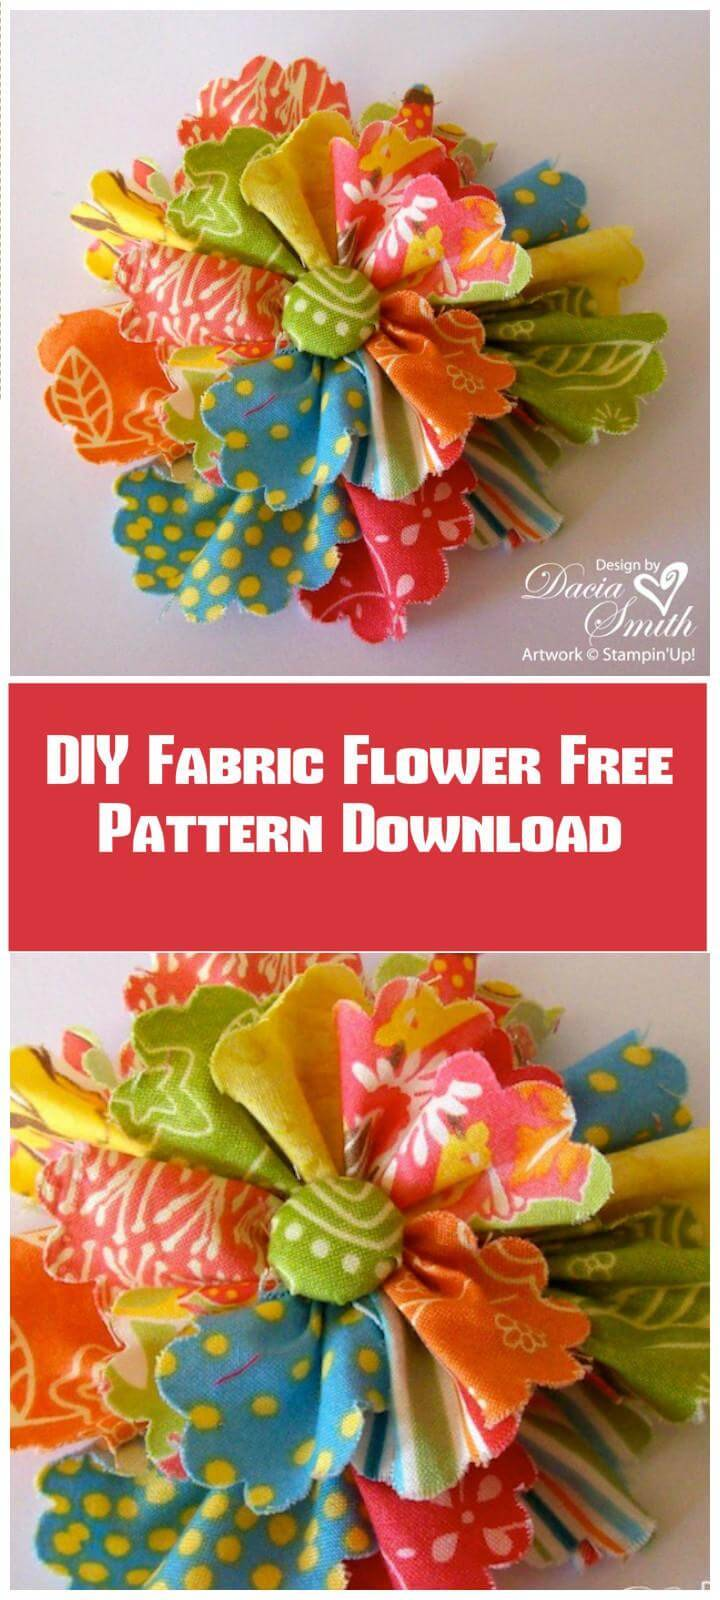 DIY easy fabric flower pattern